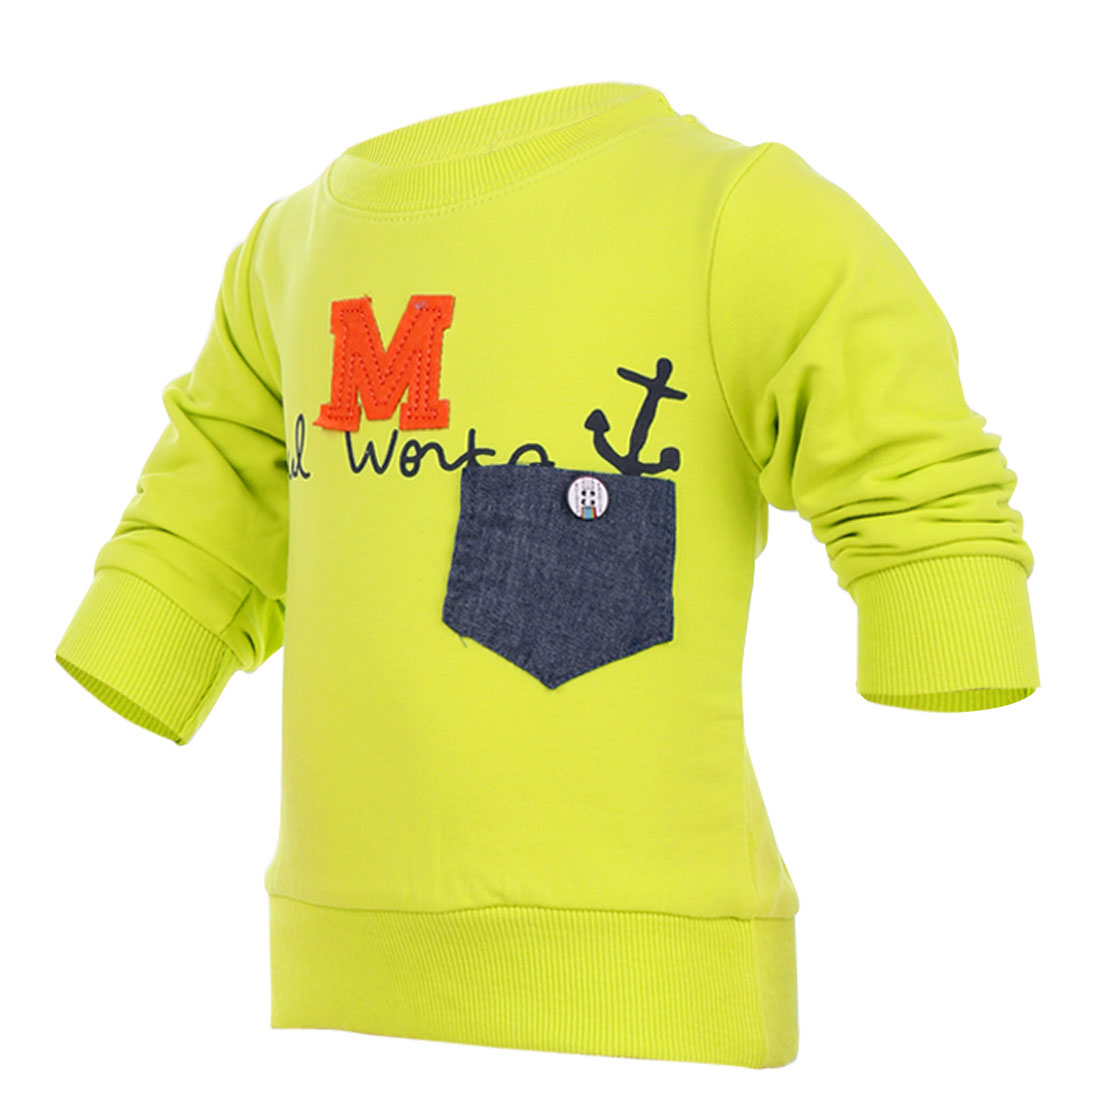 Kids Round Neck Stretchy Letter M Pattern Pullover Design Green T-Shirt 4